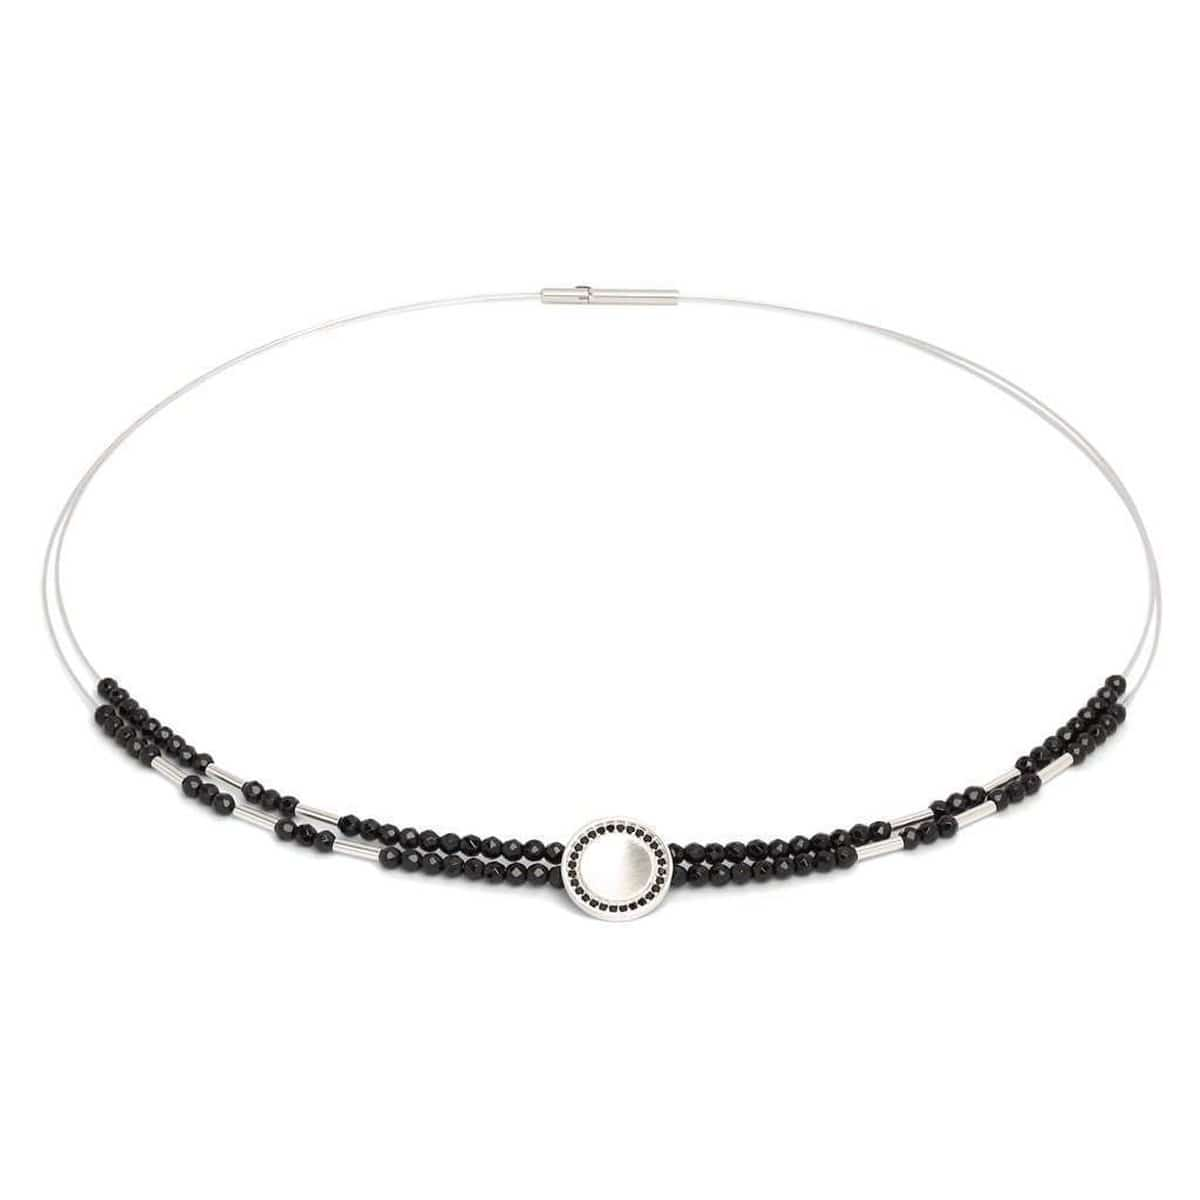 Corelli Black Spinel Necklace - 85221494-Bernd Wolf-Renee Taylor Gallery